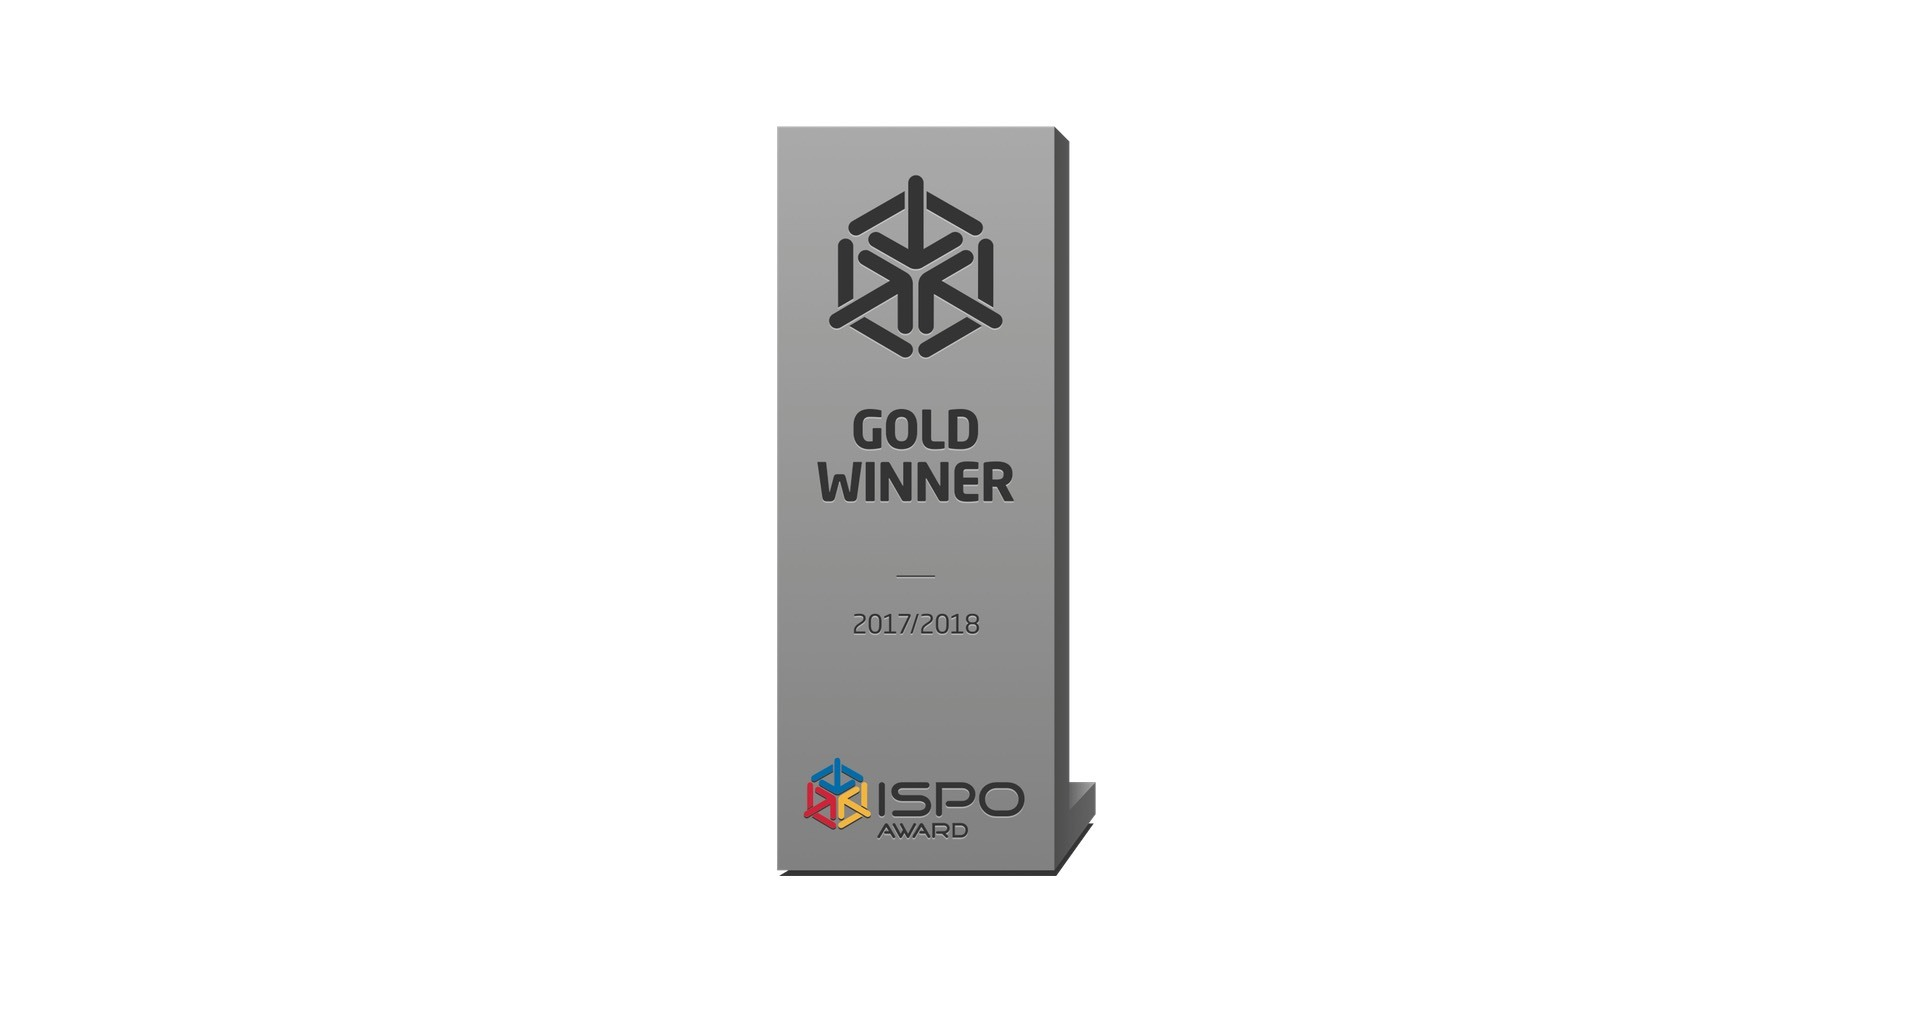 Cloudflow goldaward